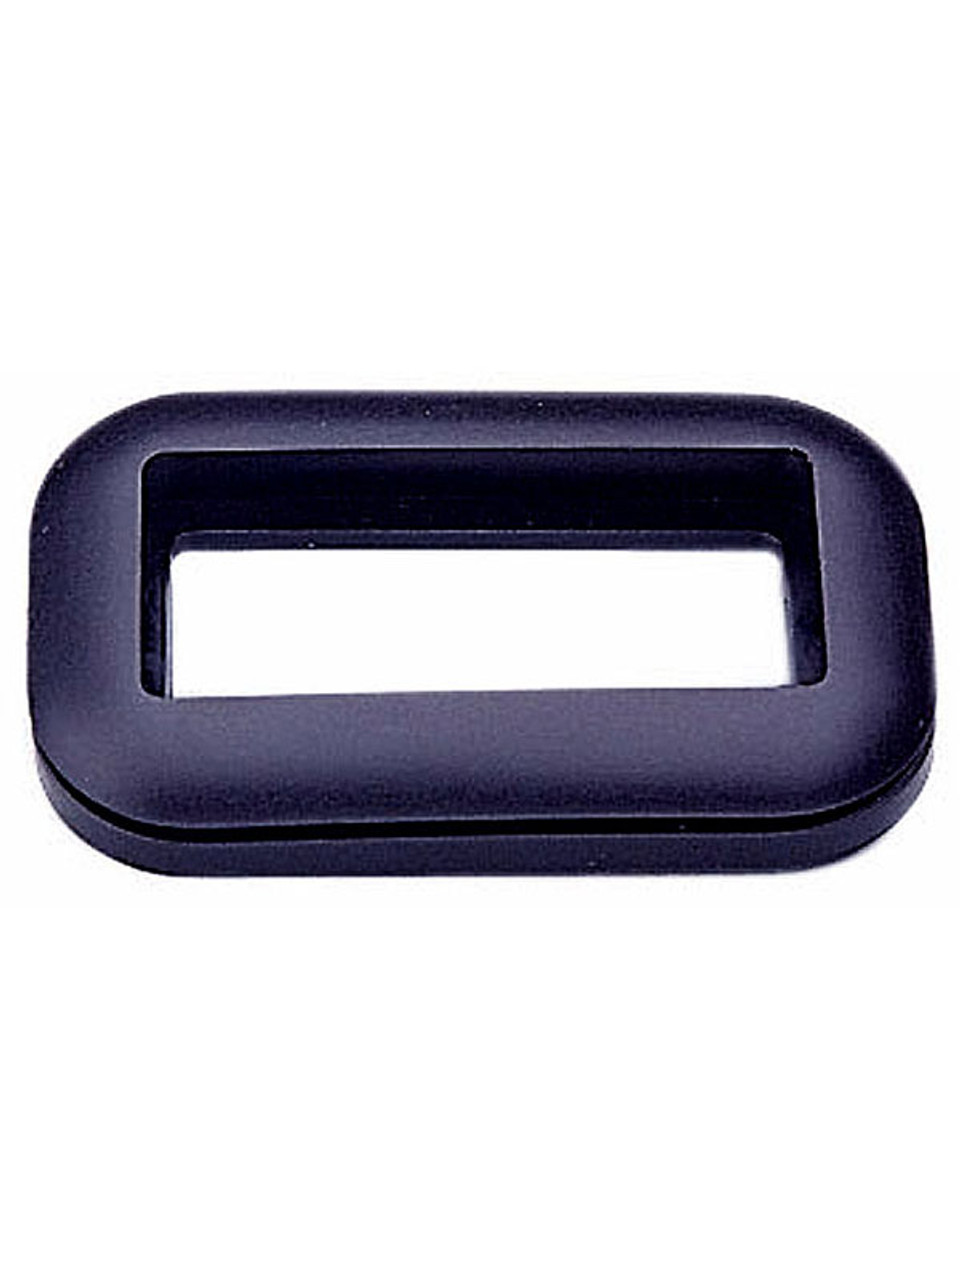 150 18 Peterson Rectangular Grommet